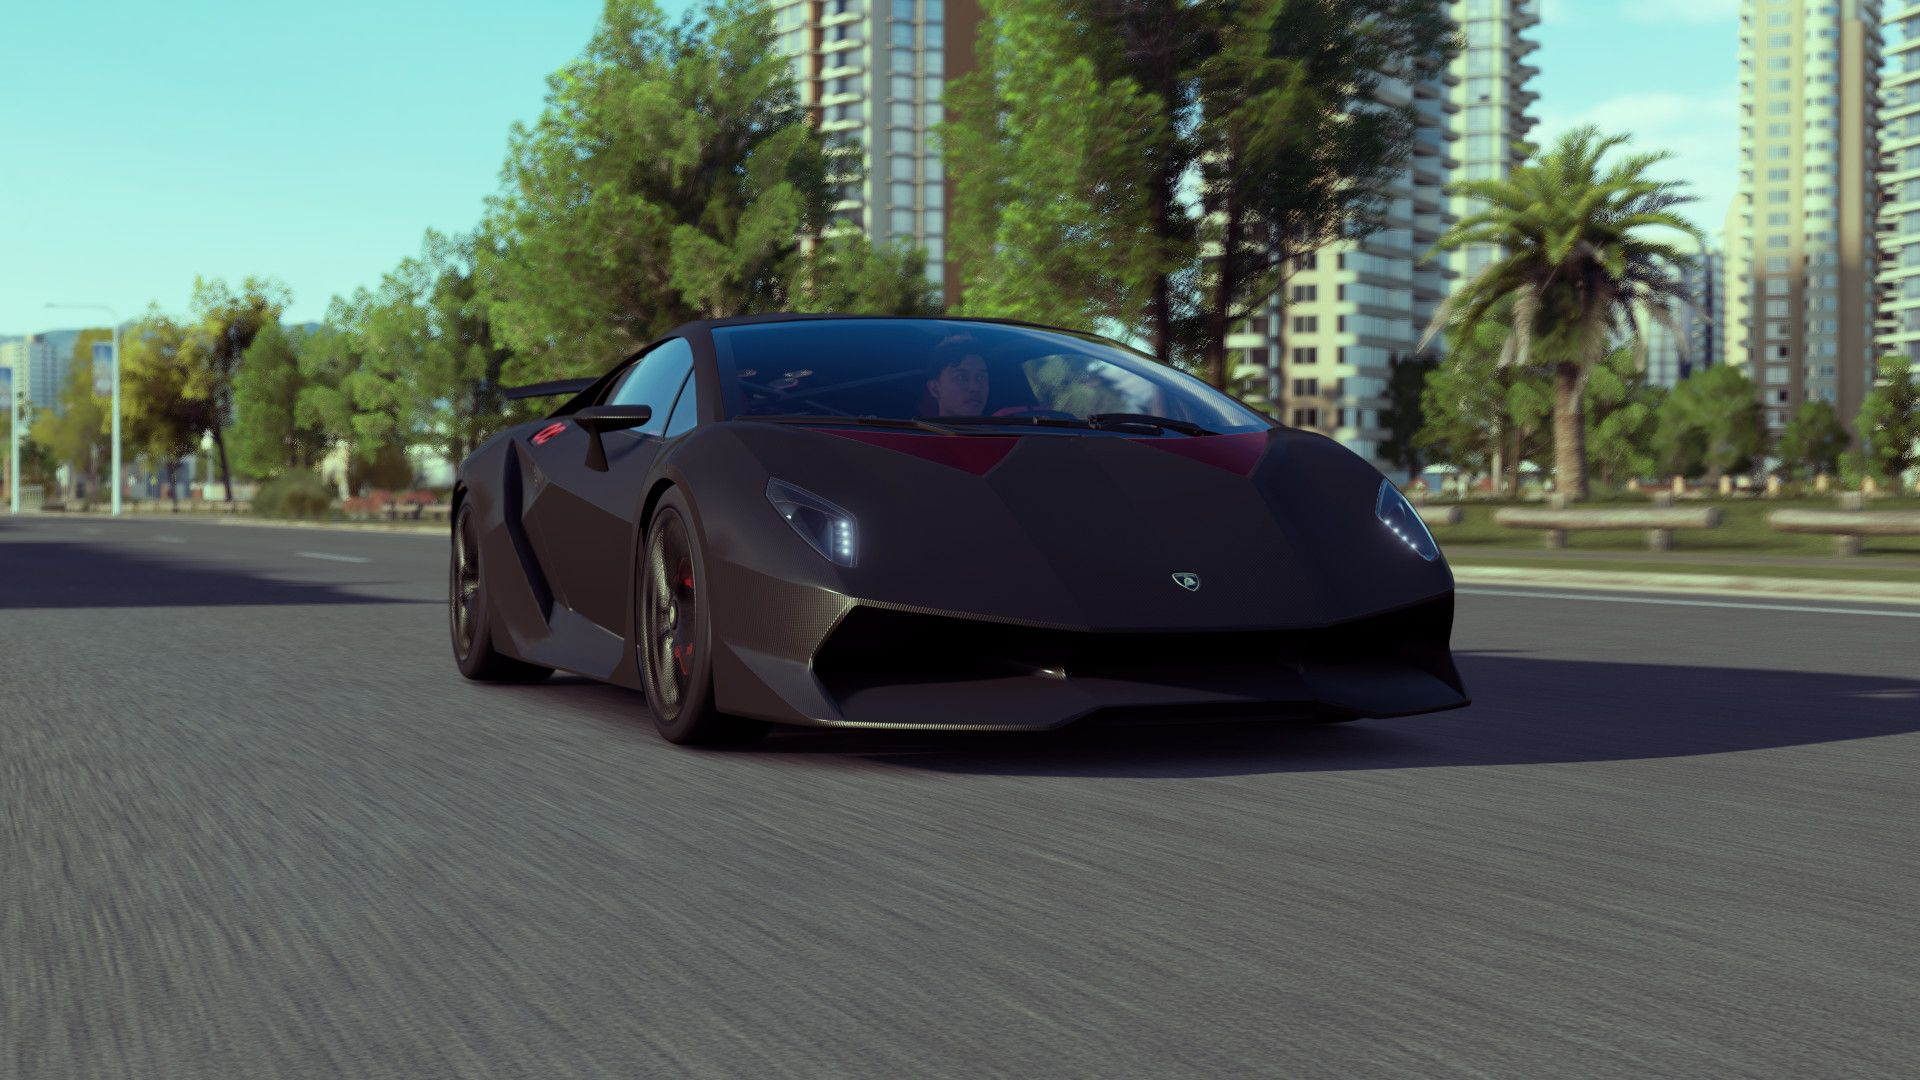 #Lamborghini_Sesto_Elemento will be challenging this August in Forza Horizon 3, and there is still a possibility for potential buyers to buy one.